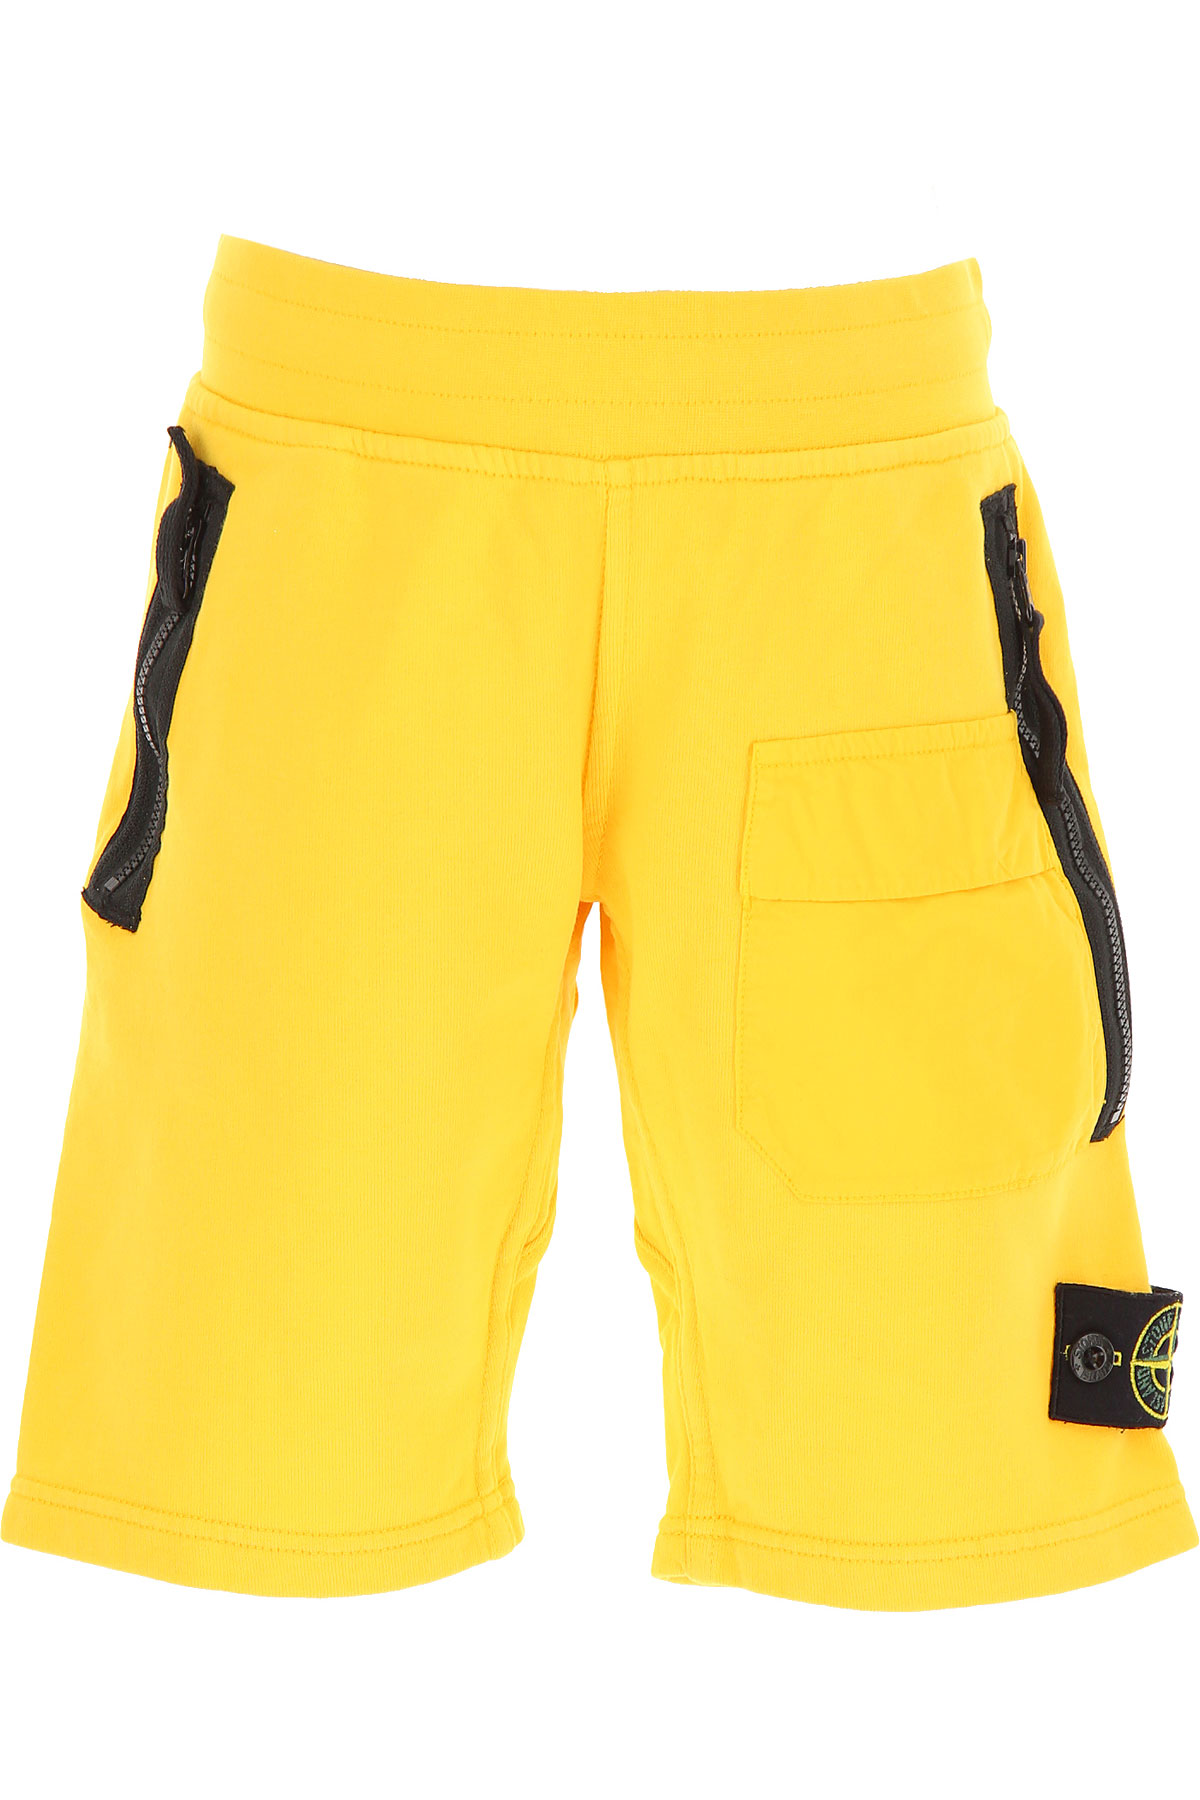 Stone Island Kids Shorts for Boys On Sale in Outlet, Yellow, Cotton, 2019, 6Y 8Y